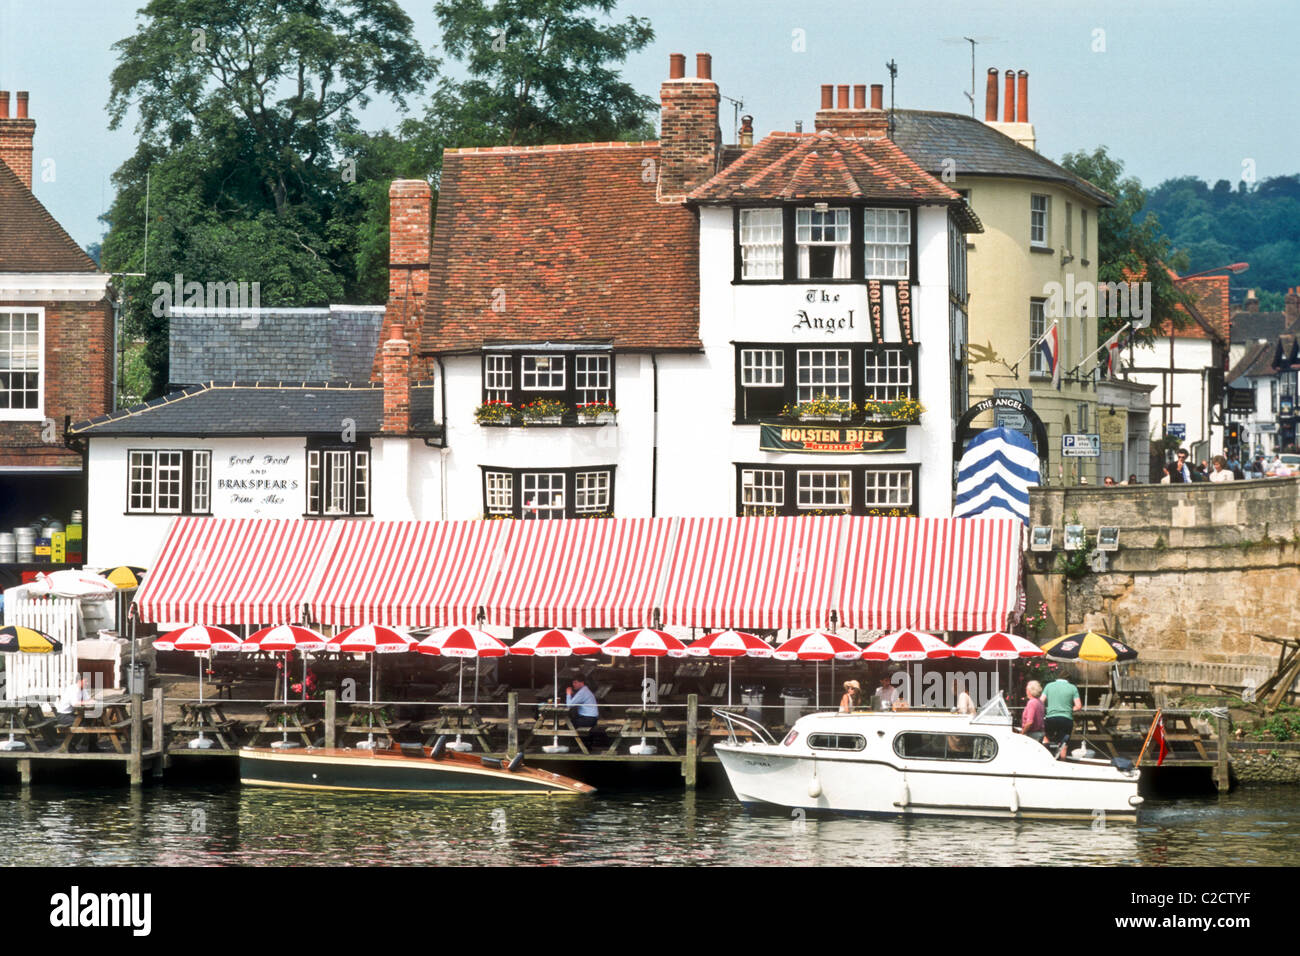 The Angel Inn at Henley on Thames during regatta week River Thames Oxfordshire England UK Europe - Stock Image